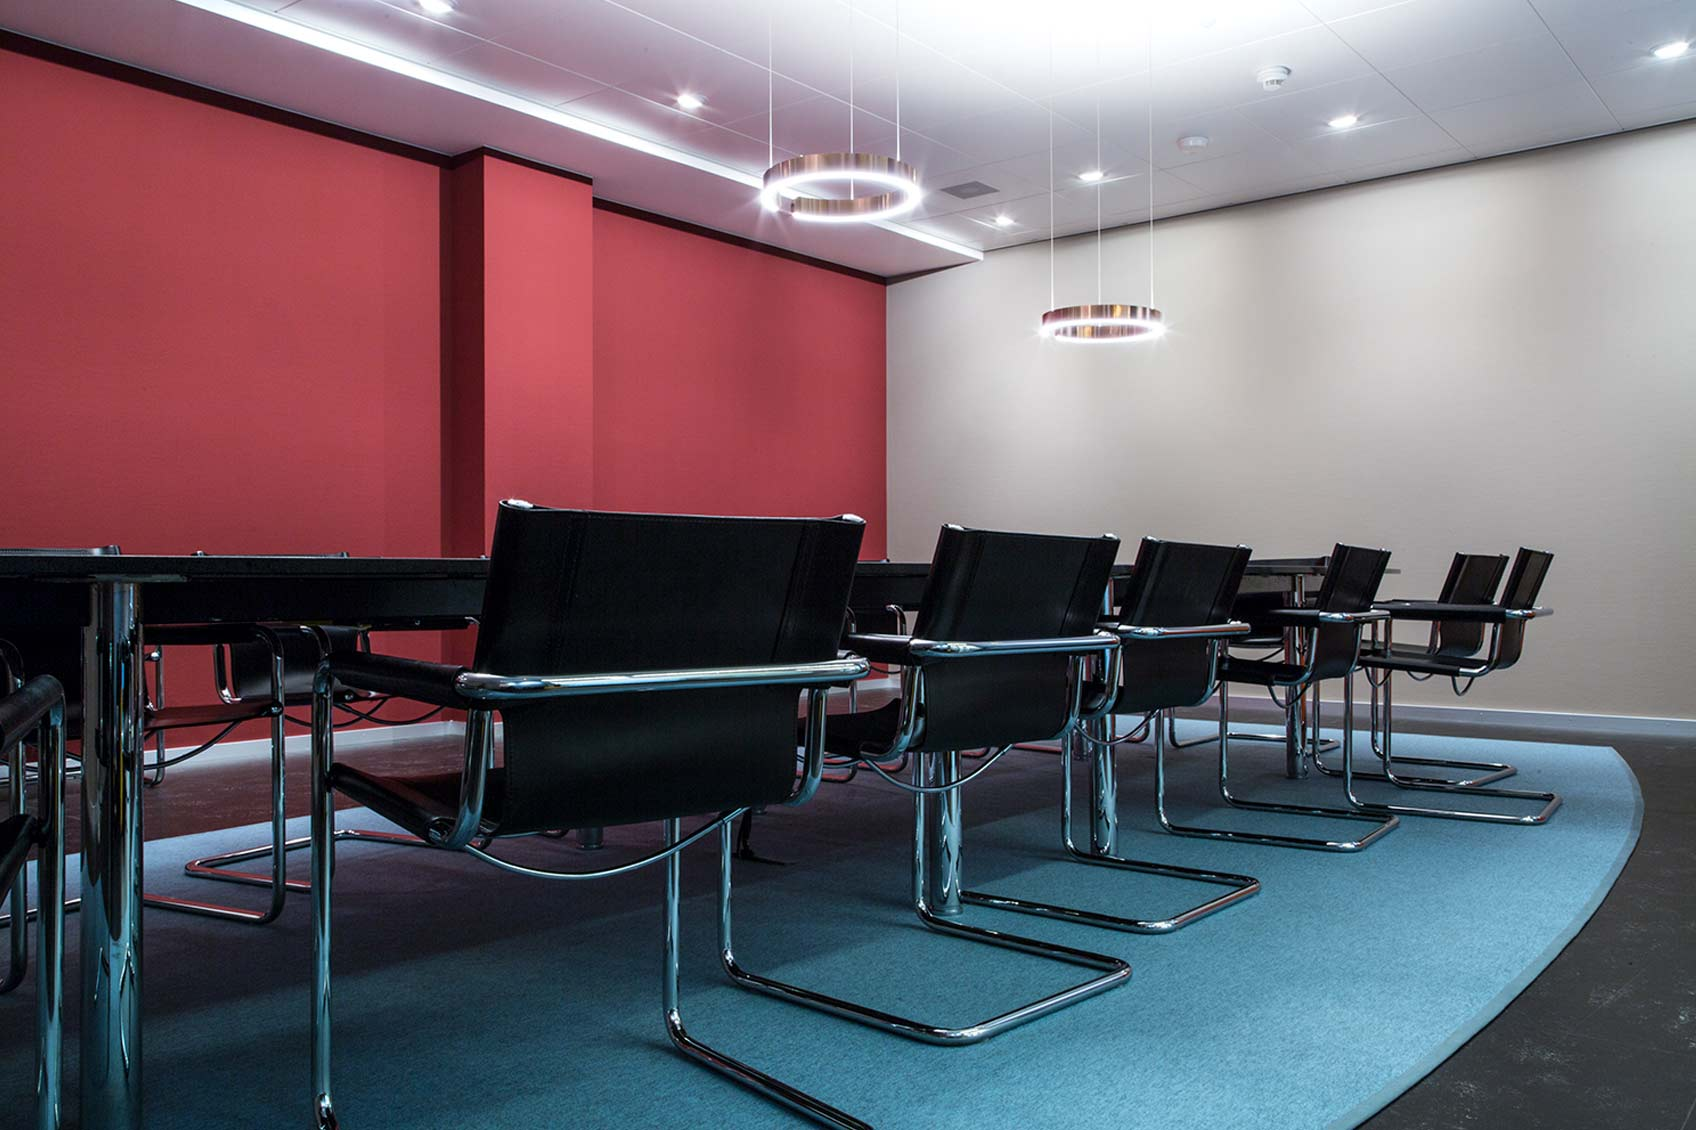 Colour design large meeting room ©Hannah Grüninger